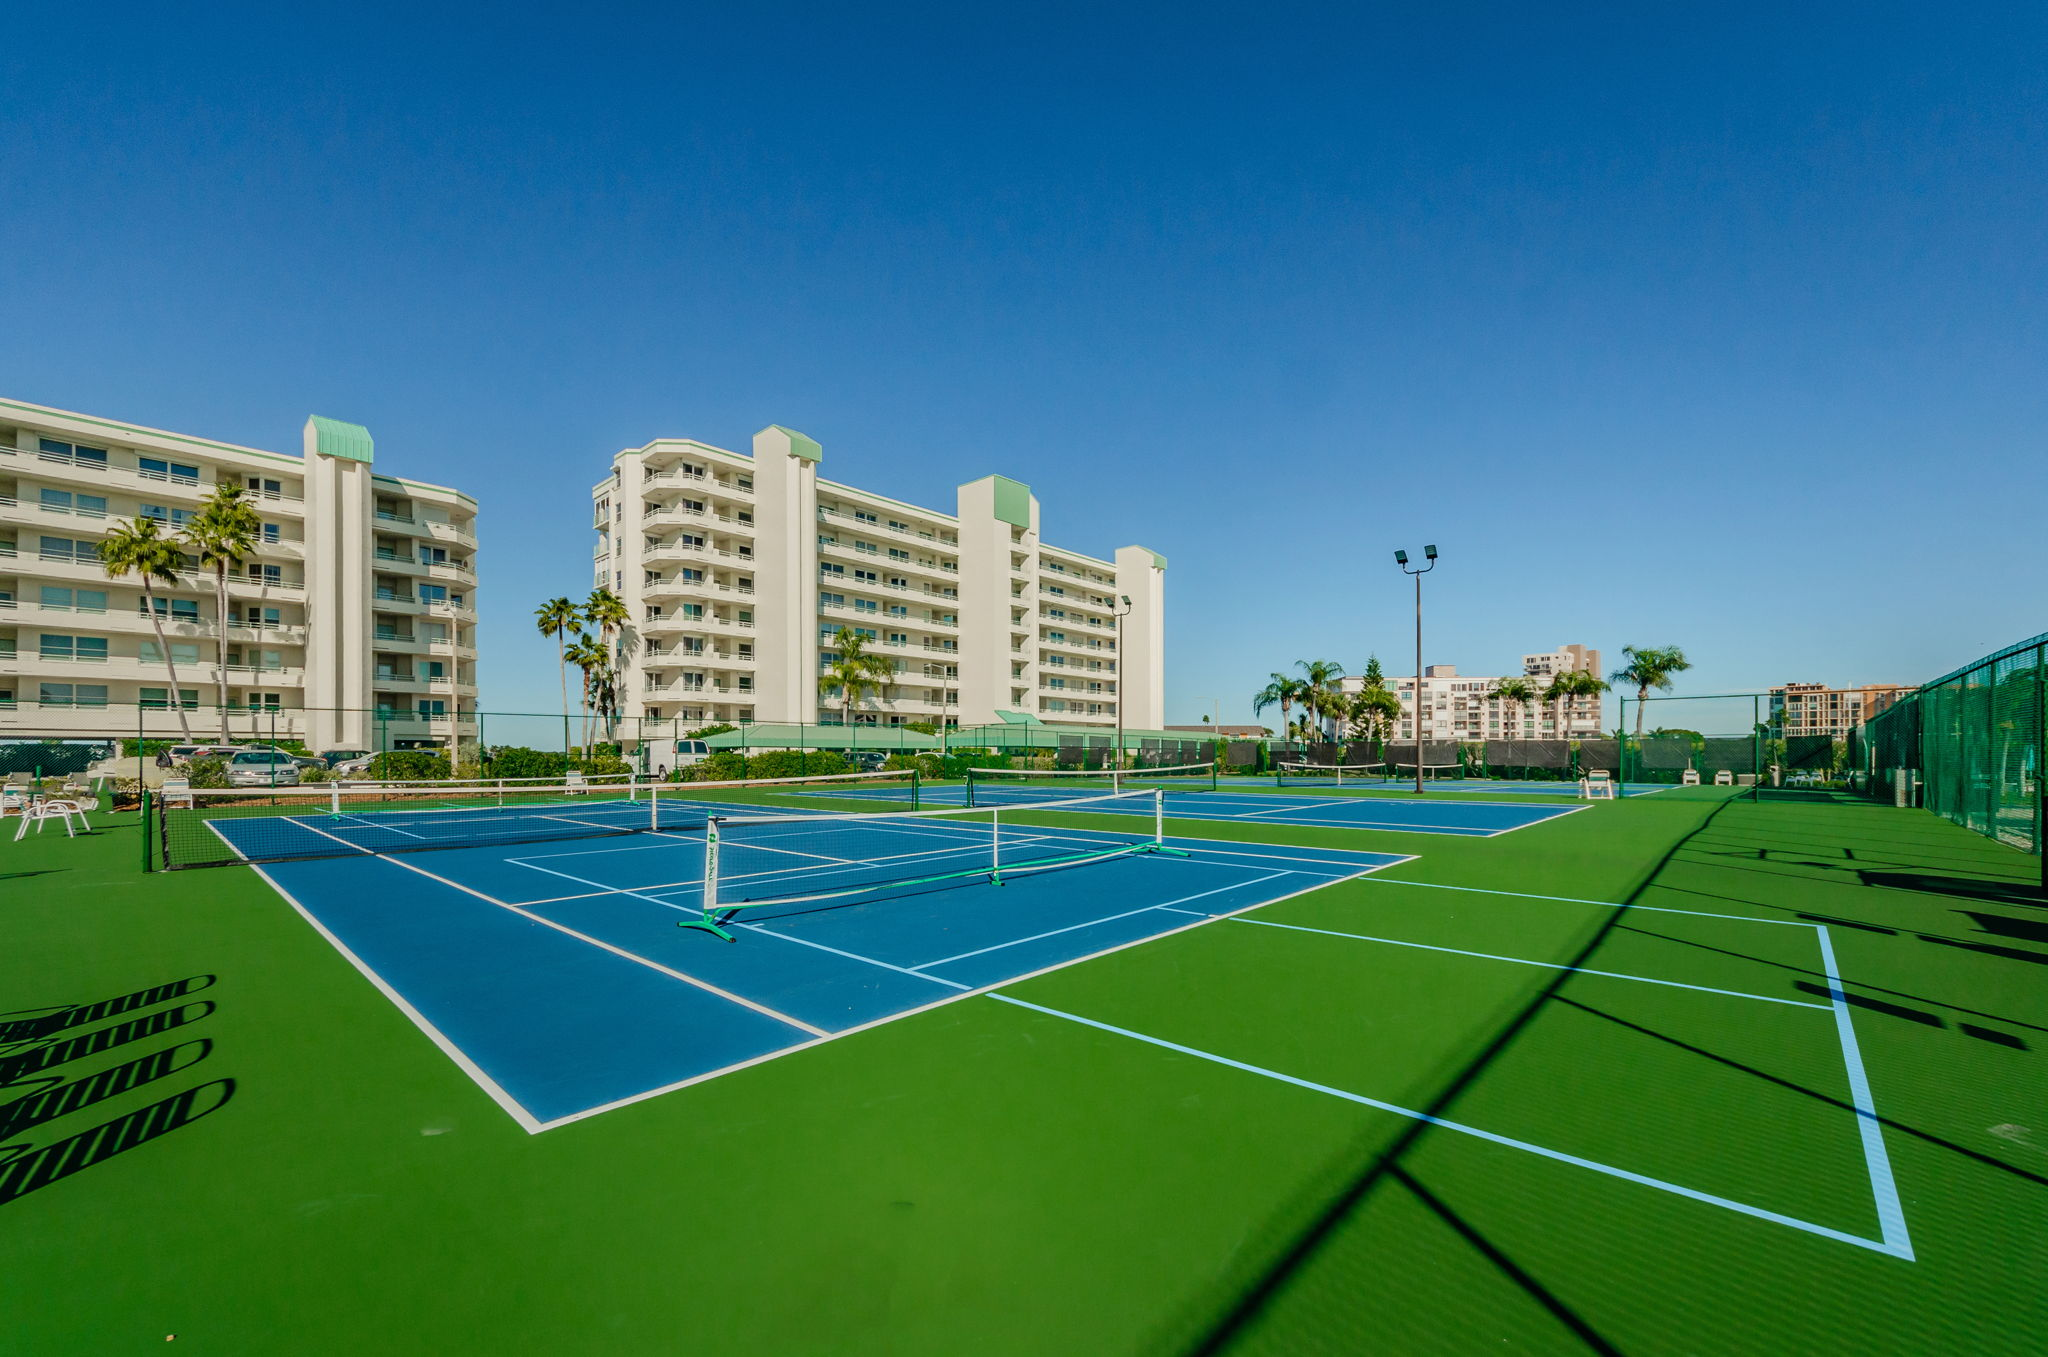 Tennis and Pickleball Courts1